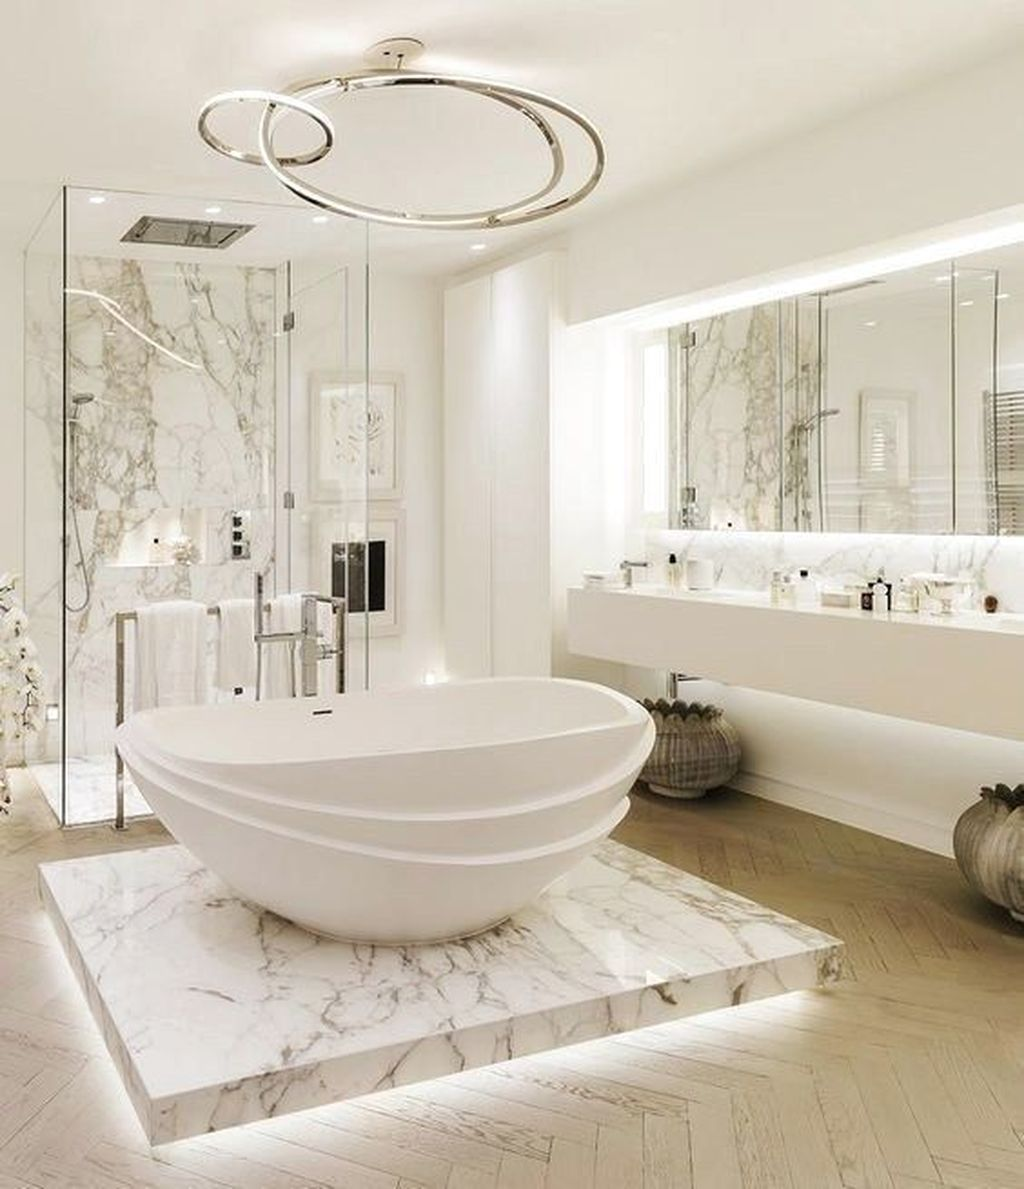 Awesome Spa Bathroom Decor Ideas You Must Have 01